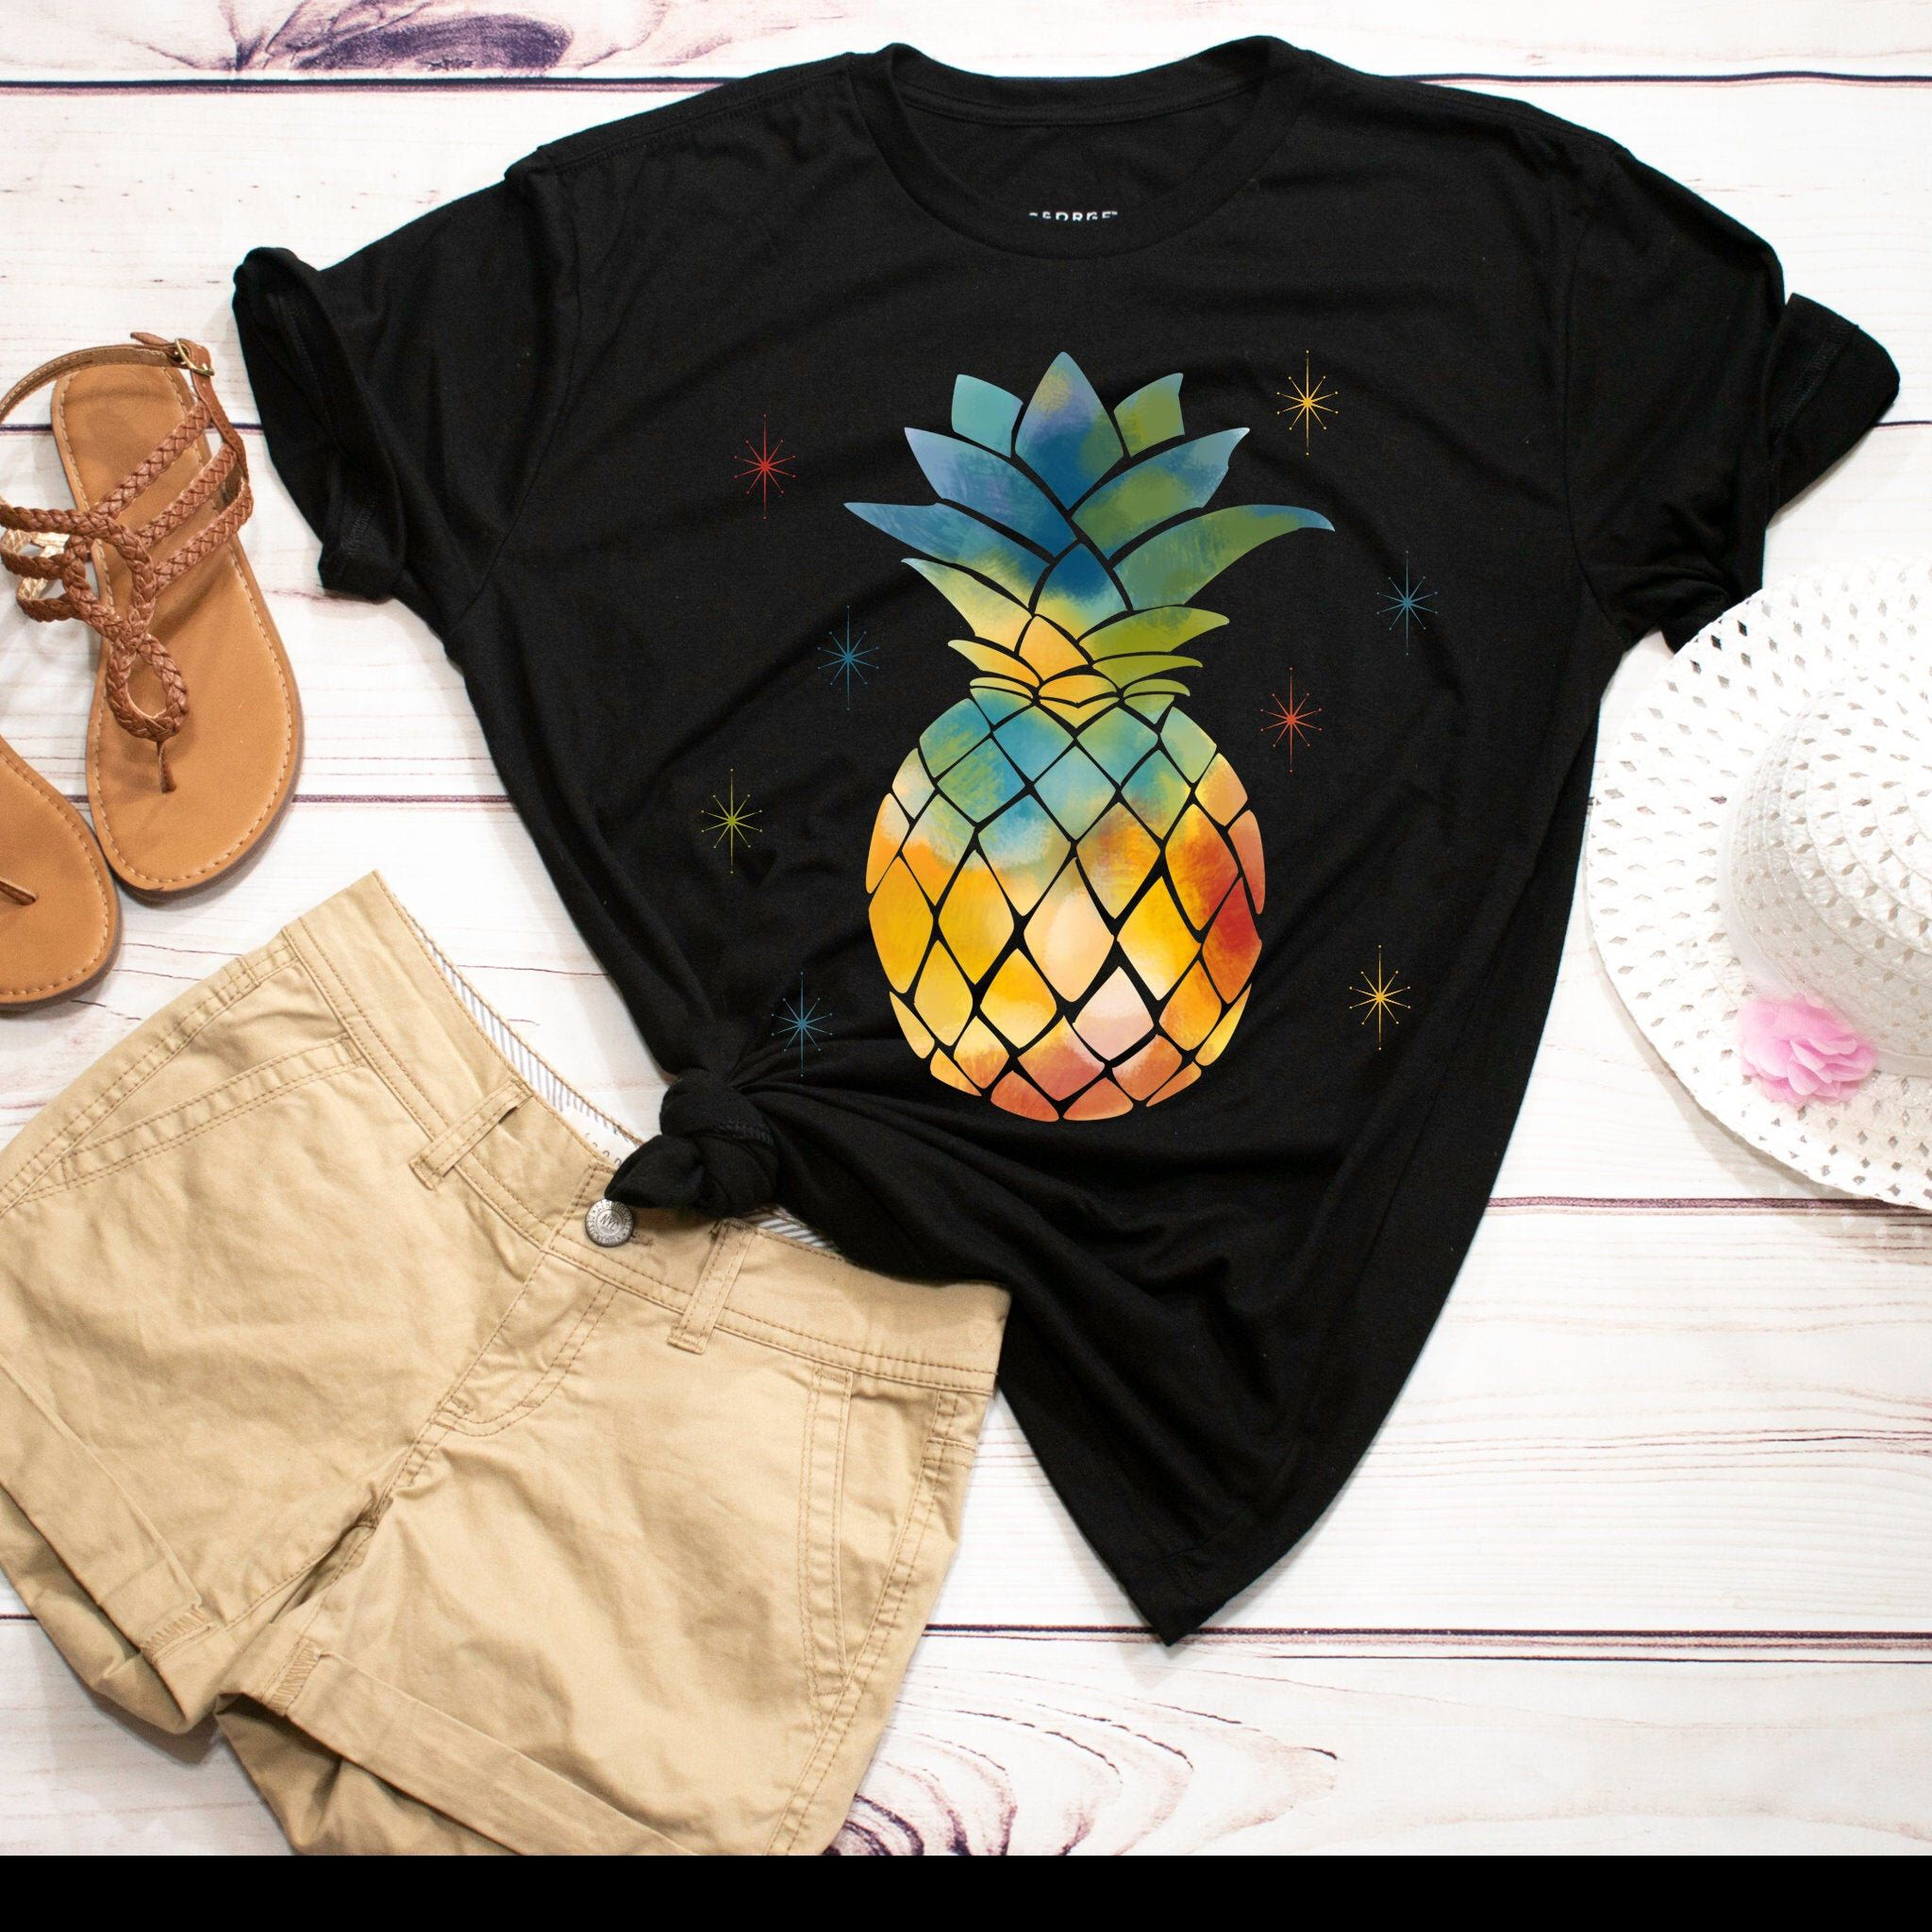 Excited to share this item from my #etsy shop: Pineapple Flower Shirt, Pineapple Shirt, Pineapple Gifts, Pineapple Lover, Aloha Beaches, Hawaii Party, Pineapple Tee Tank Top Hoodie #black #rainbow #pineappleshirt #pineapplelover #alohabeaches #hawaiiparty #pineappletee #pineappletshirt #pineapplegifts